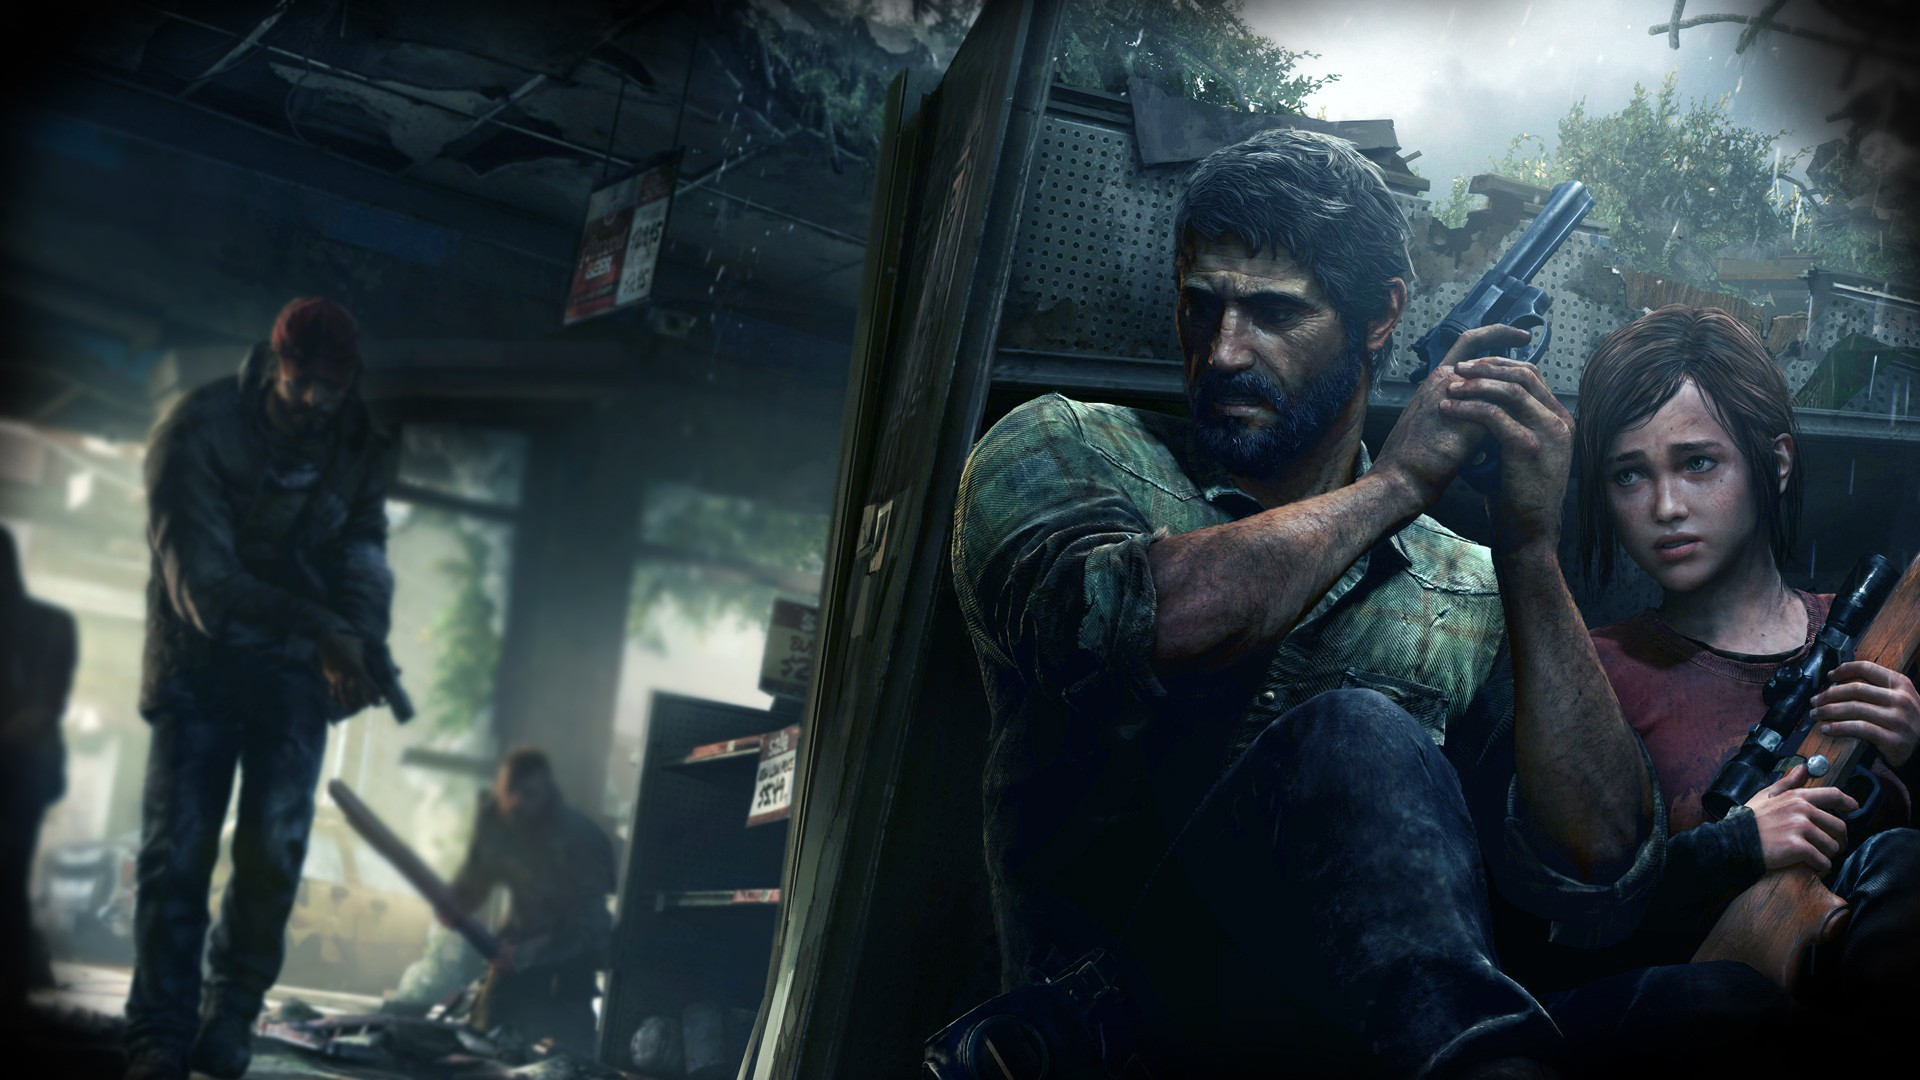 Review: The Last of Us | John Michael McGrath